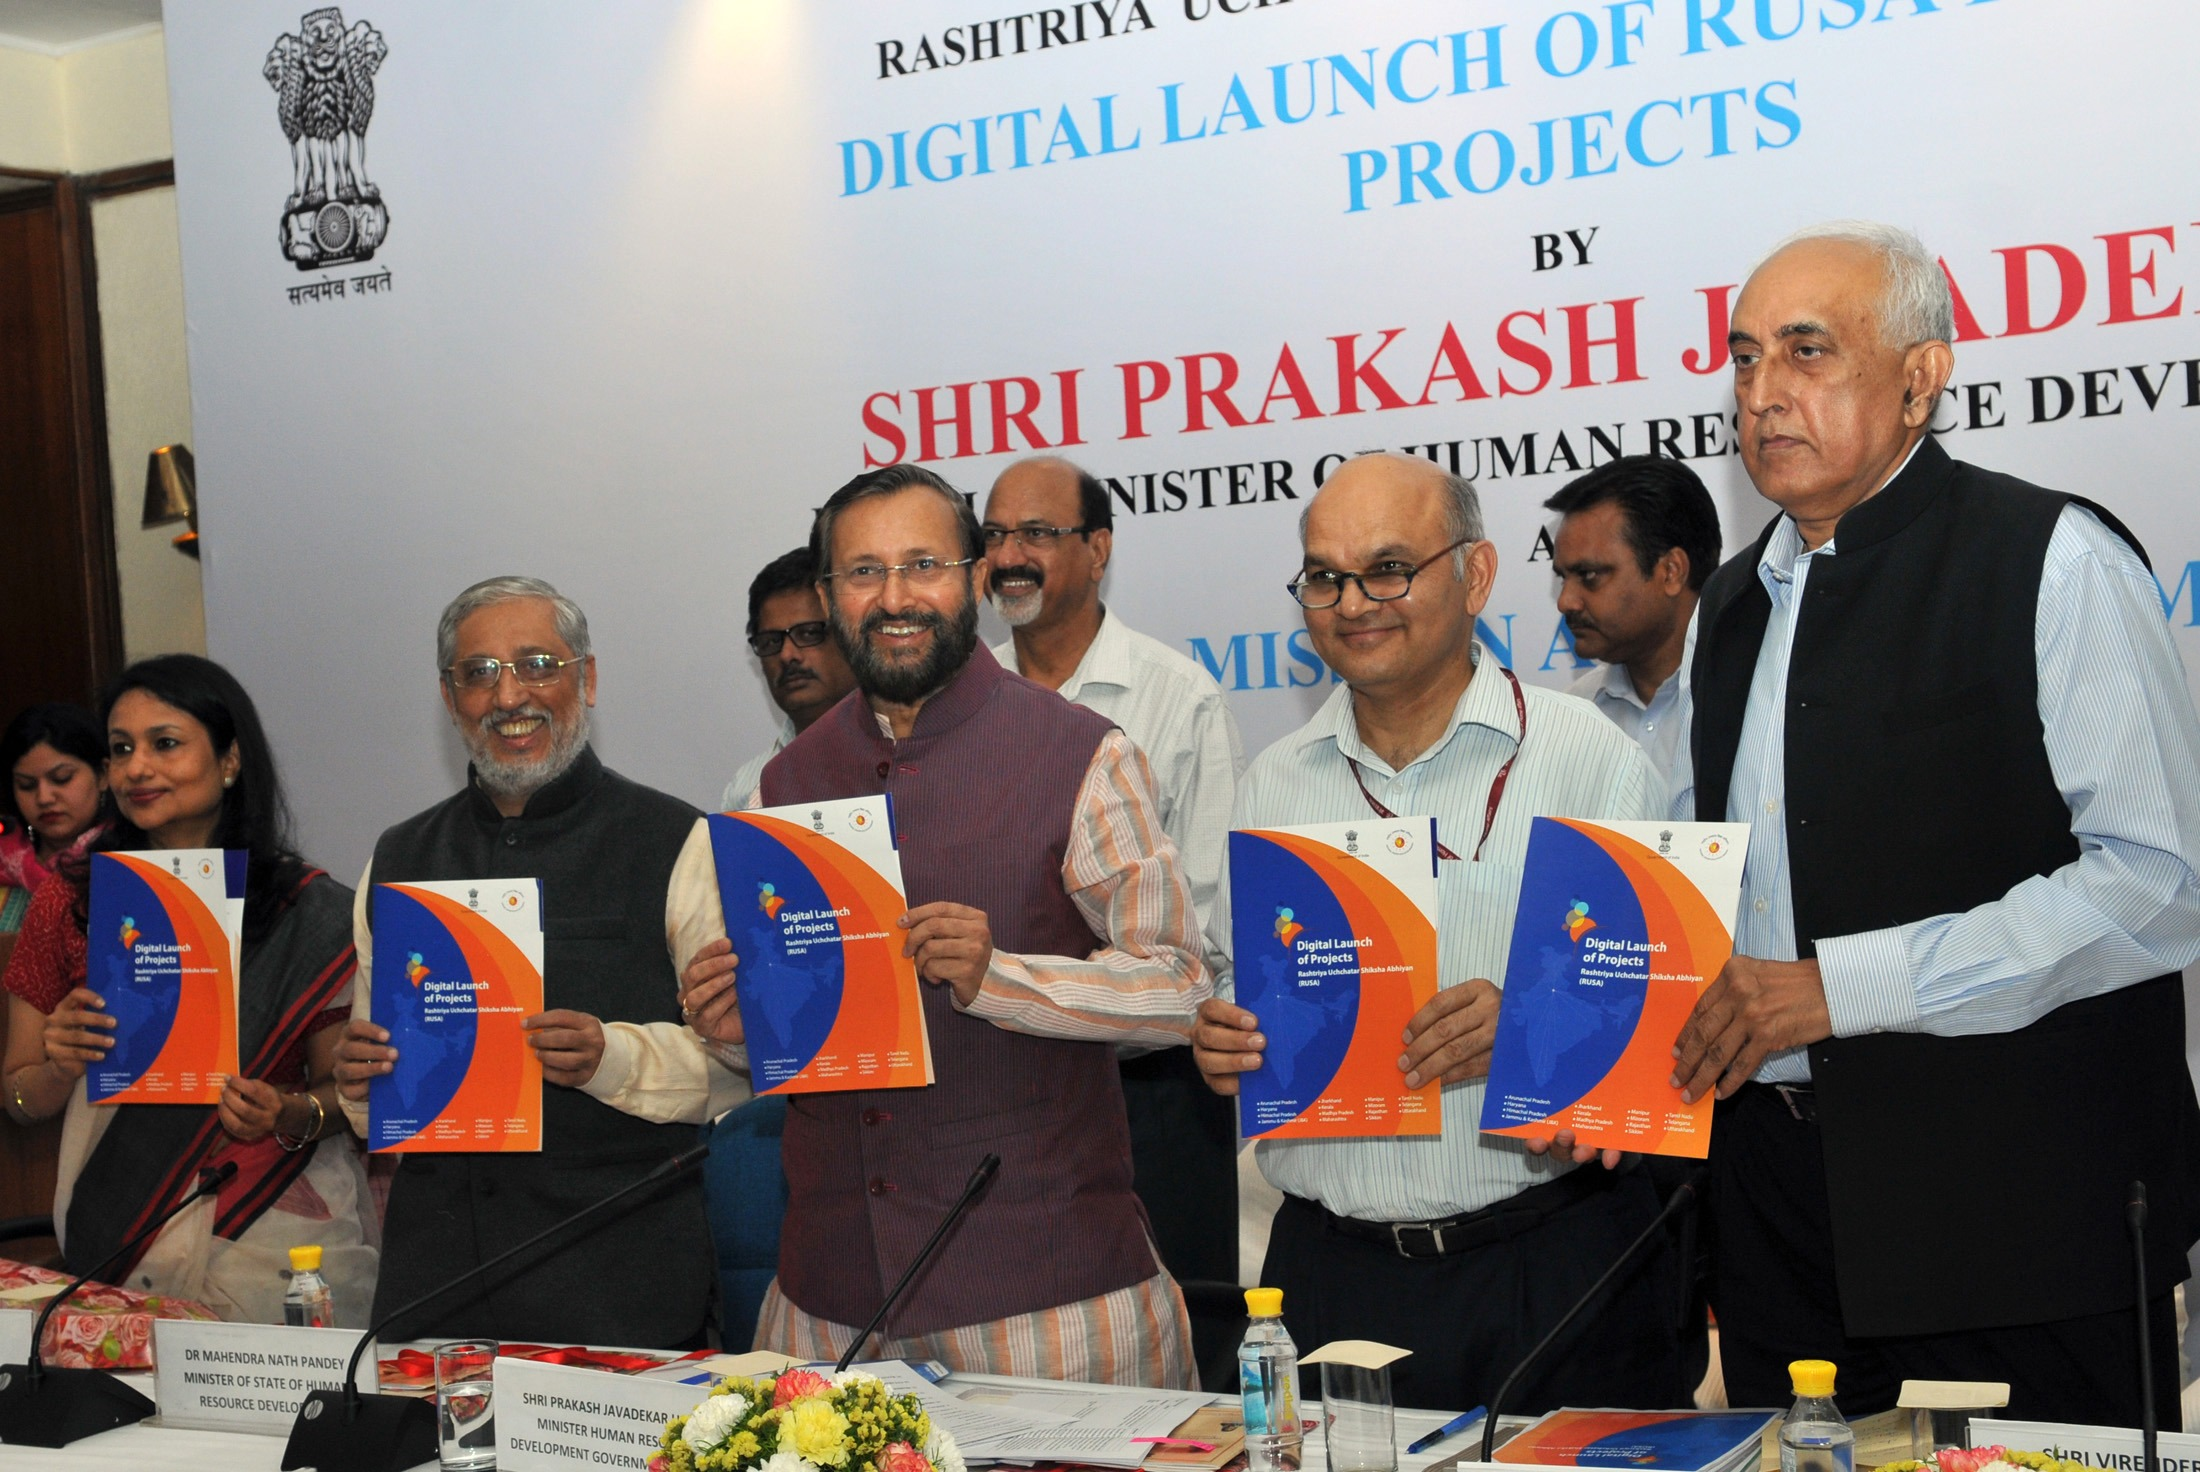 """The Union Minister for Human Resource Development, Shri Prakash Javadekar releasing the Booklet """"Digital Launch of Projects; Rashtriya Uchchatar Shiksha Abhiyan (RUSA)"""", at the launch of the unique portal and mobile app of Rashtriya Uchchatar Shiksha Abhiyan (RUSA), a body under the aegis of the Ministry of Human Resource Development, in New Delhi on April 17, 2017. The Secretary, Department of Higher Education, Shri Kewal Kumar Sharma and other dignitaries are also seen."""